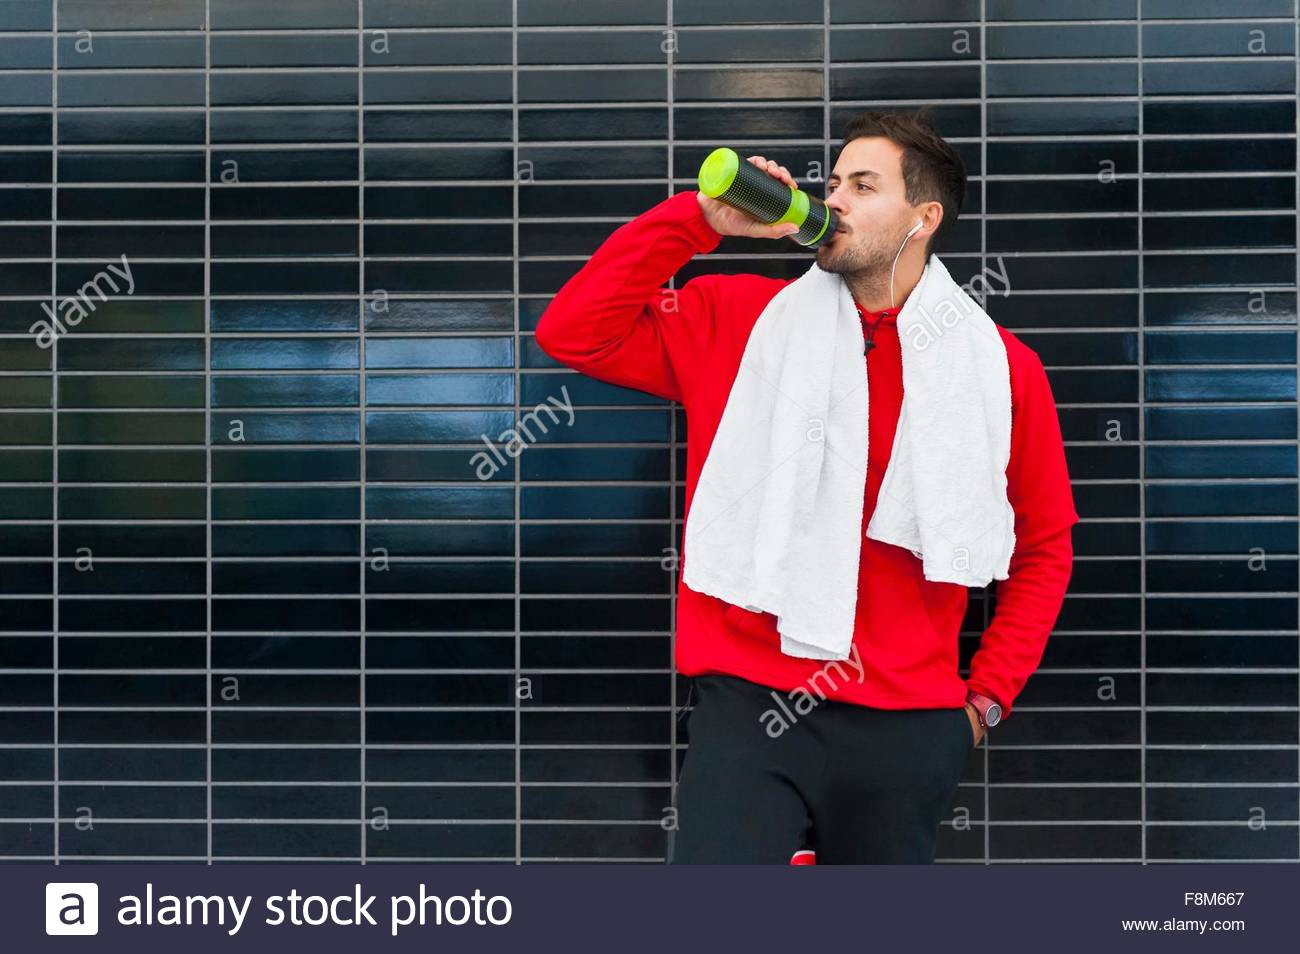 Young male runner leaning against tiled wall drinking water - Stock Image